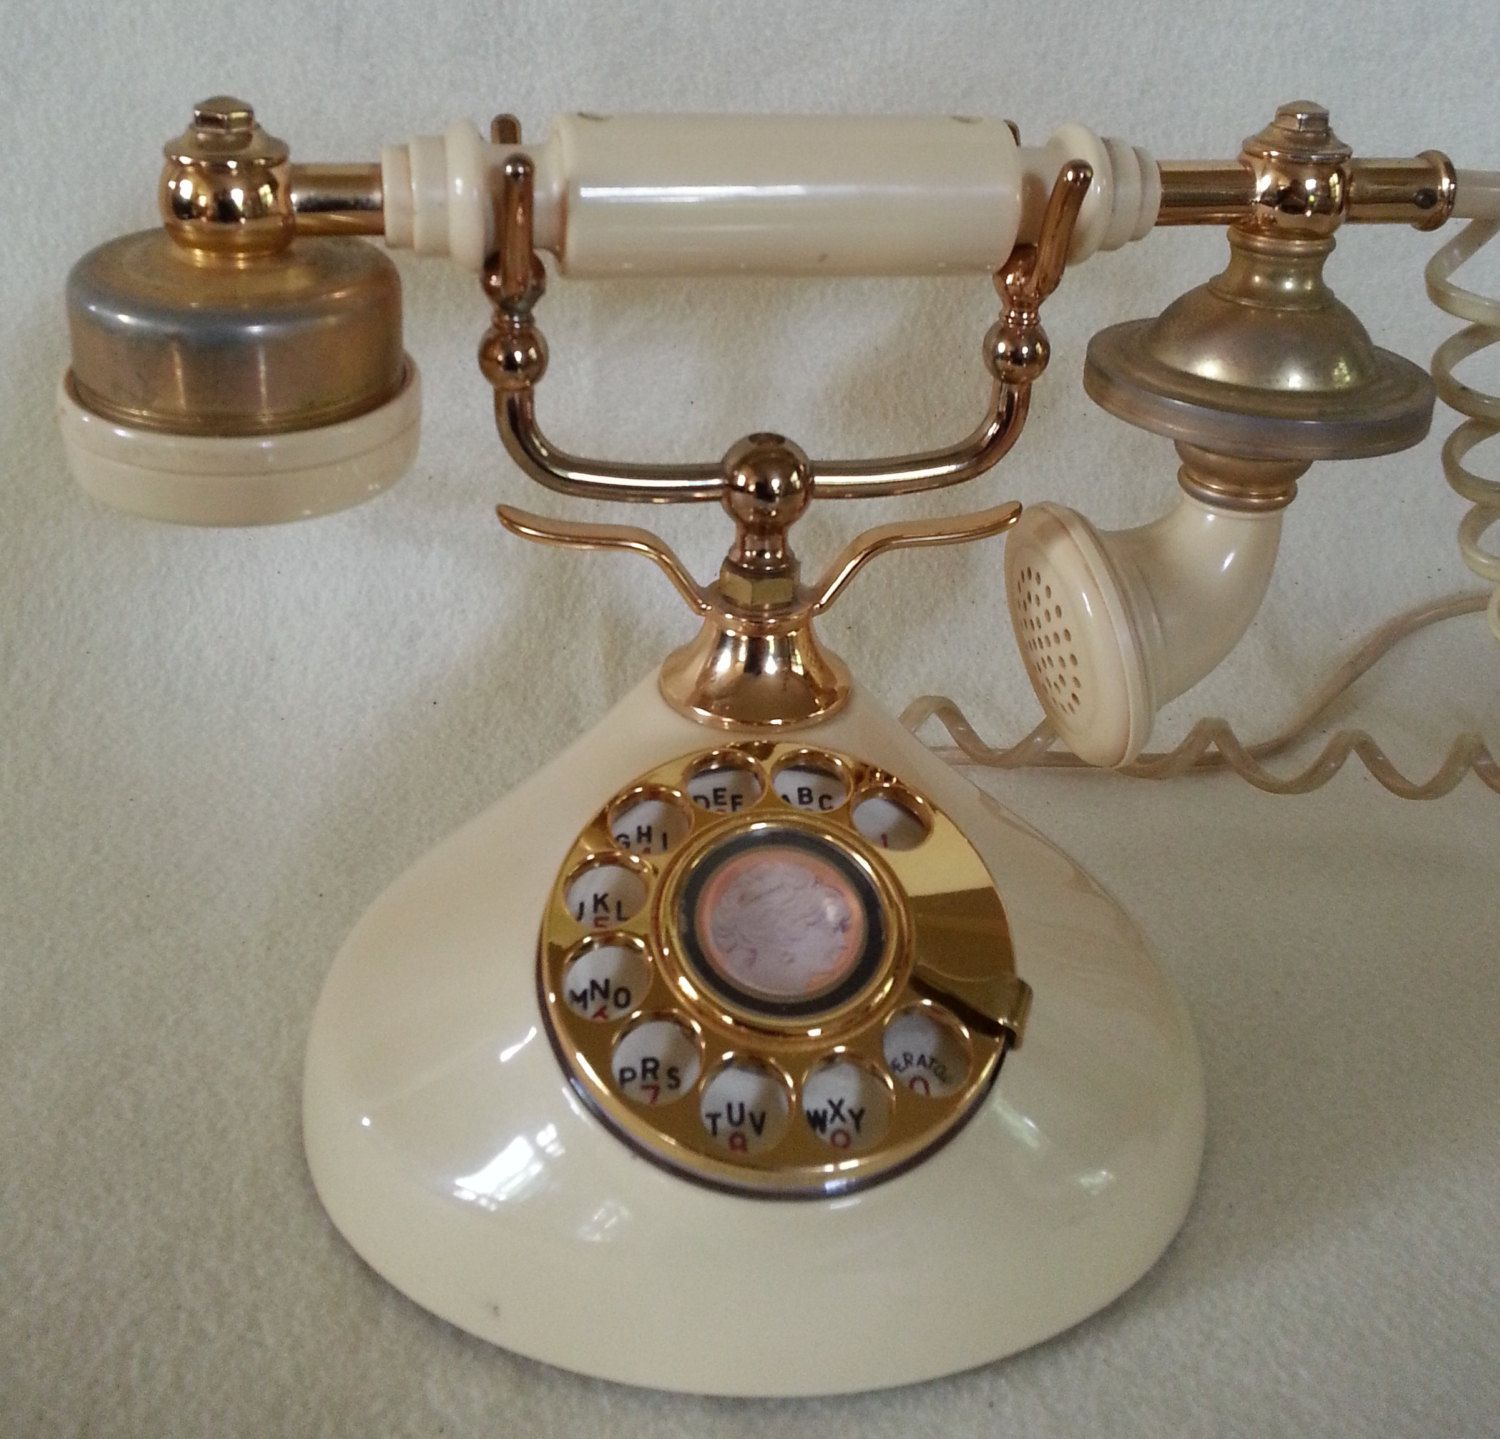 Vintage Rotary Phone Cream and Gold Victorian by